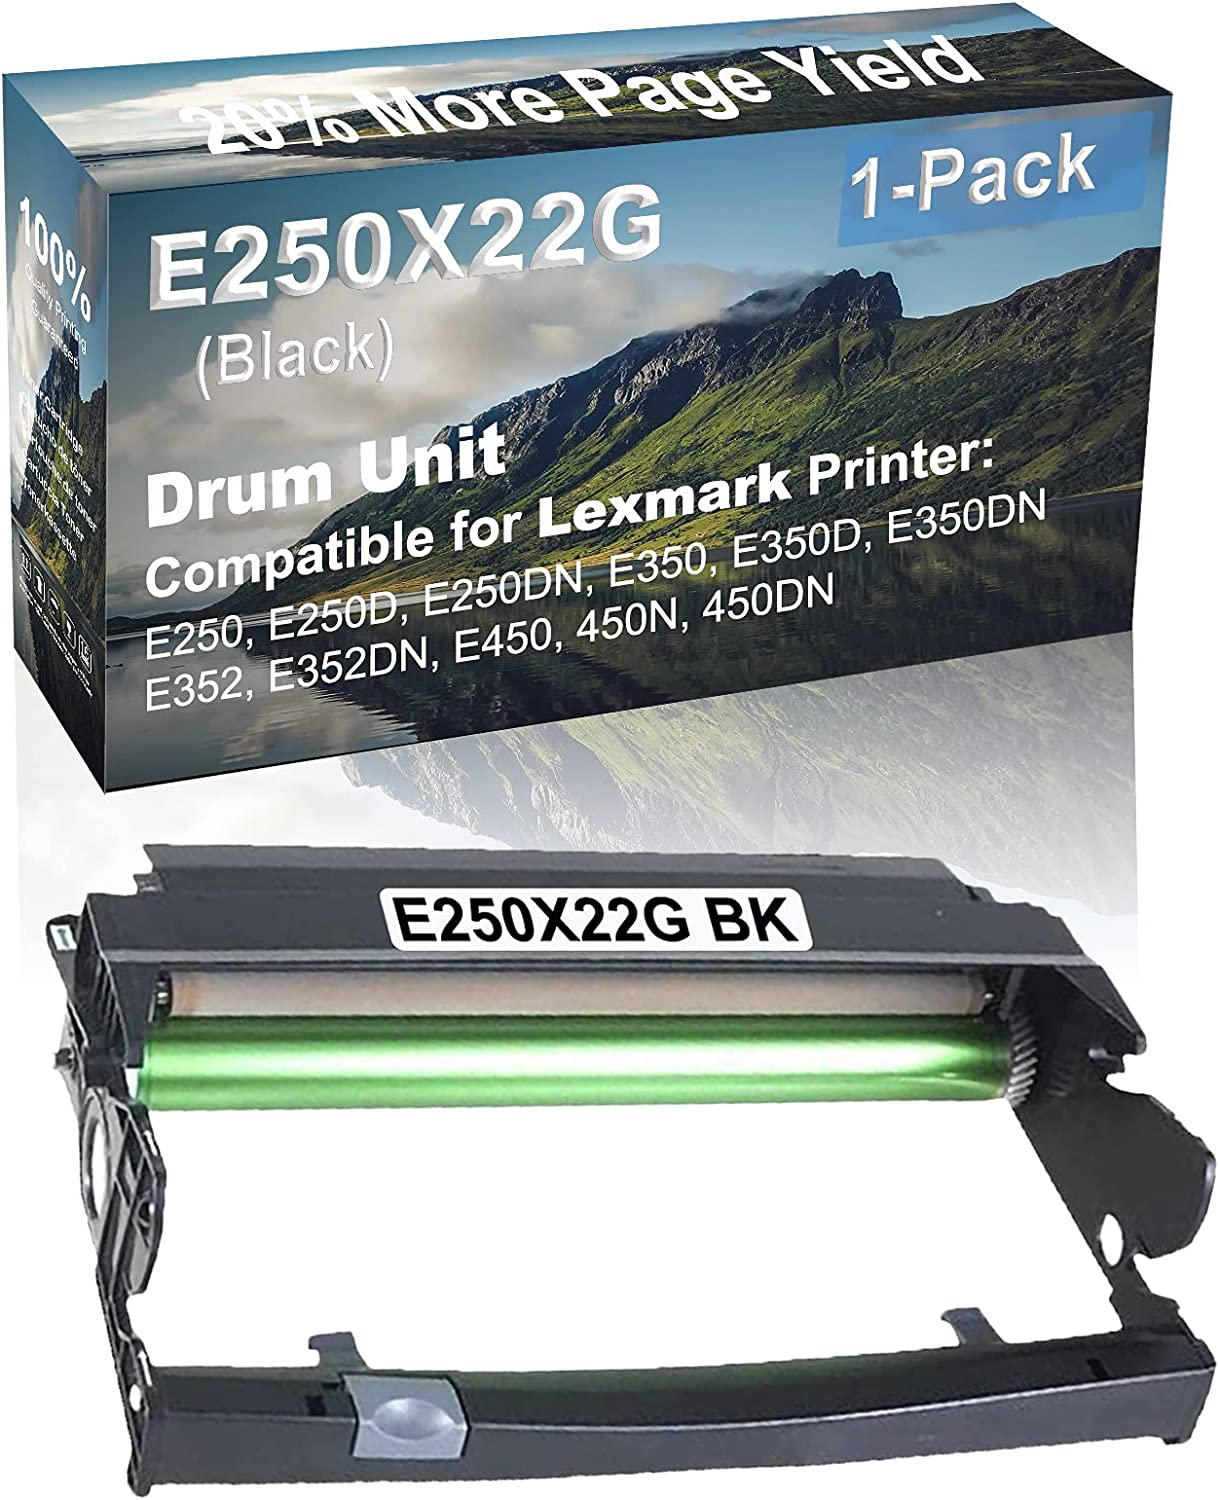 1-Pack Compatible Drum Unit (Black) Replacement for Lexmark E250X22G Drum Kit use for Lexmark E352DN, E450, 450N, 450DN Printer